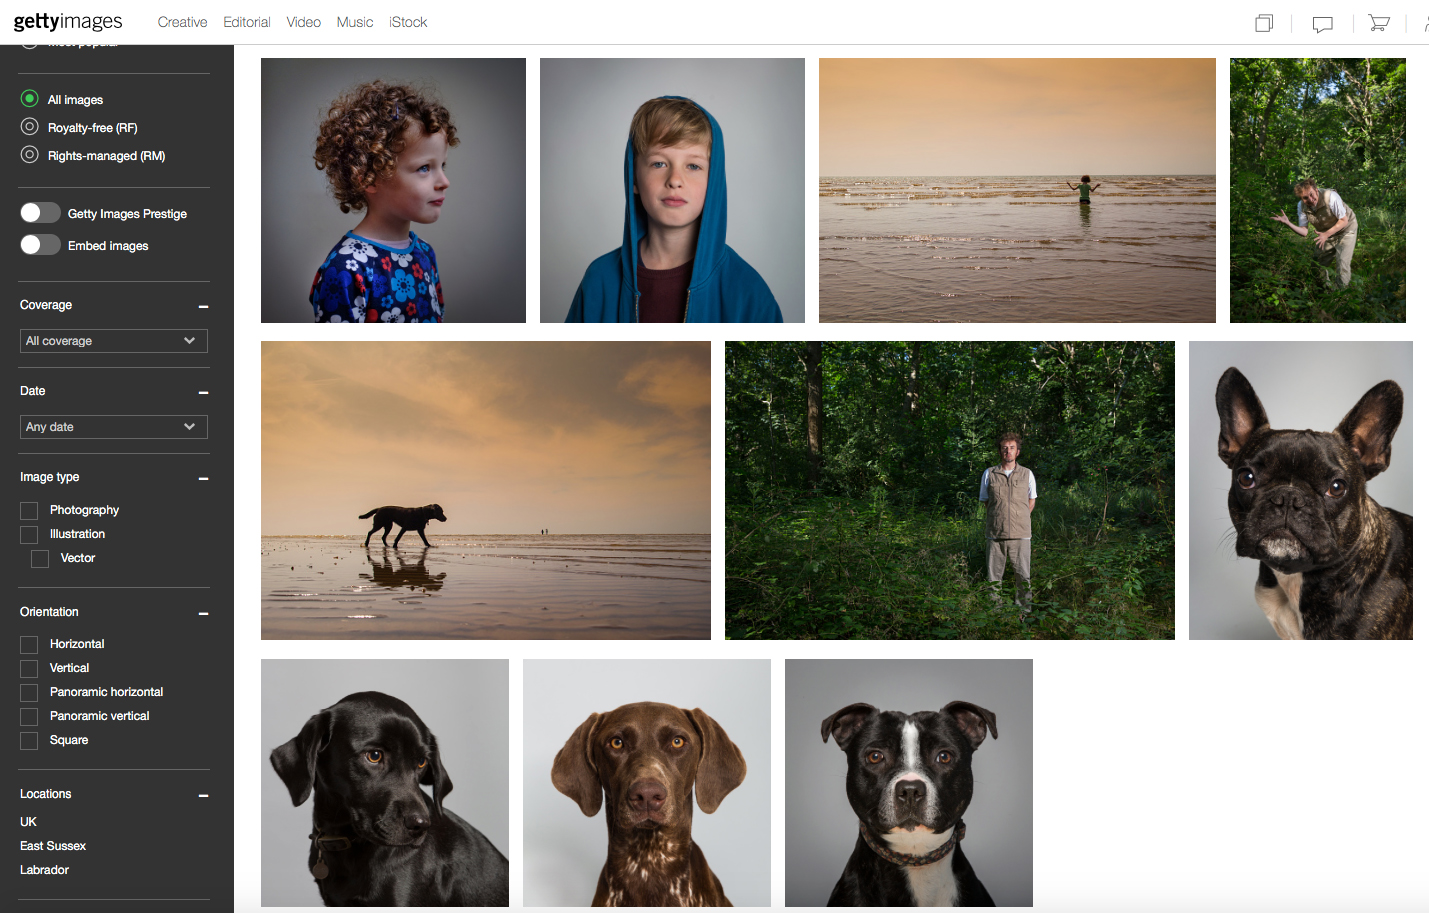 My first batch of stock pictures for  Getty Images . A mixed bag to say the least!